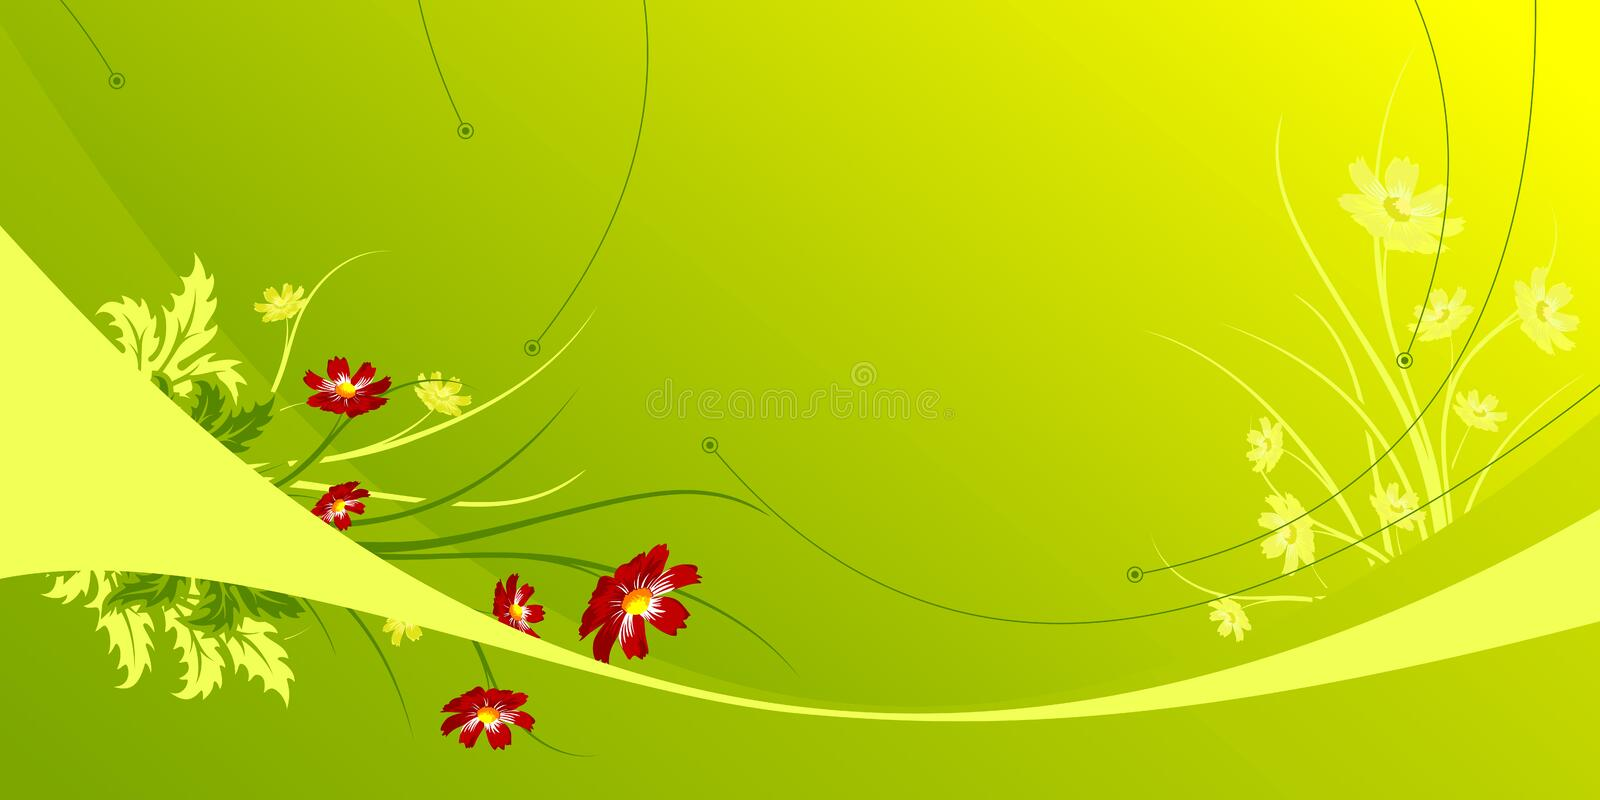 Abstract background with Flowers royalty free illustration